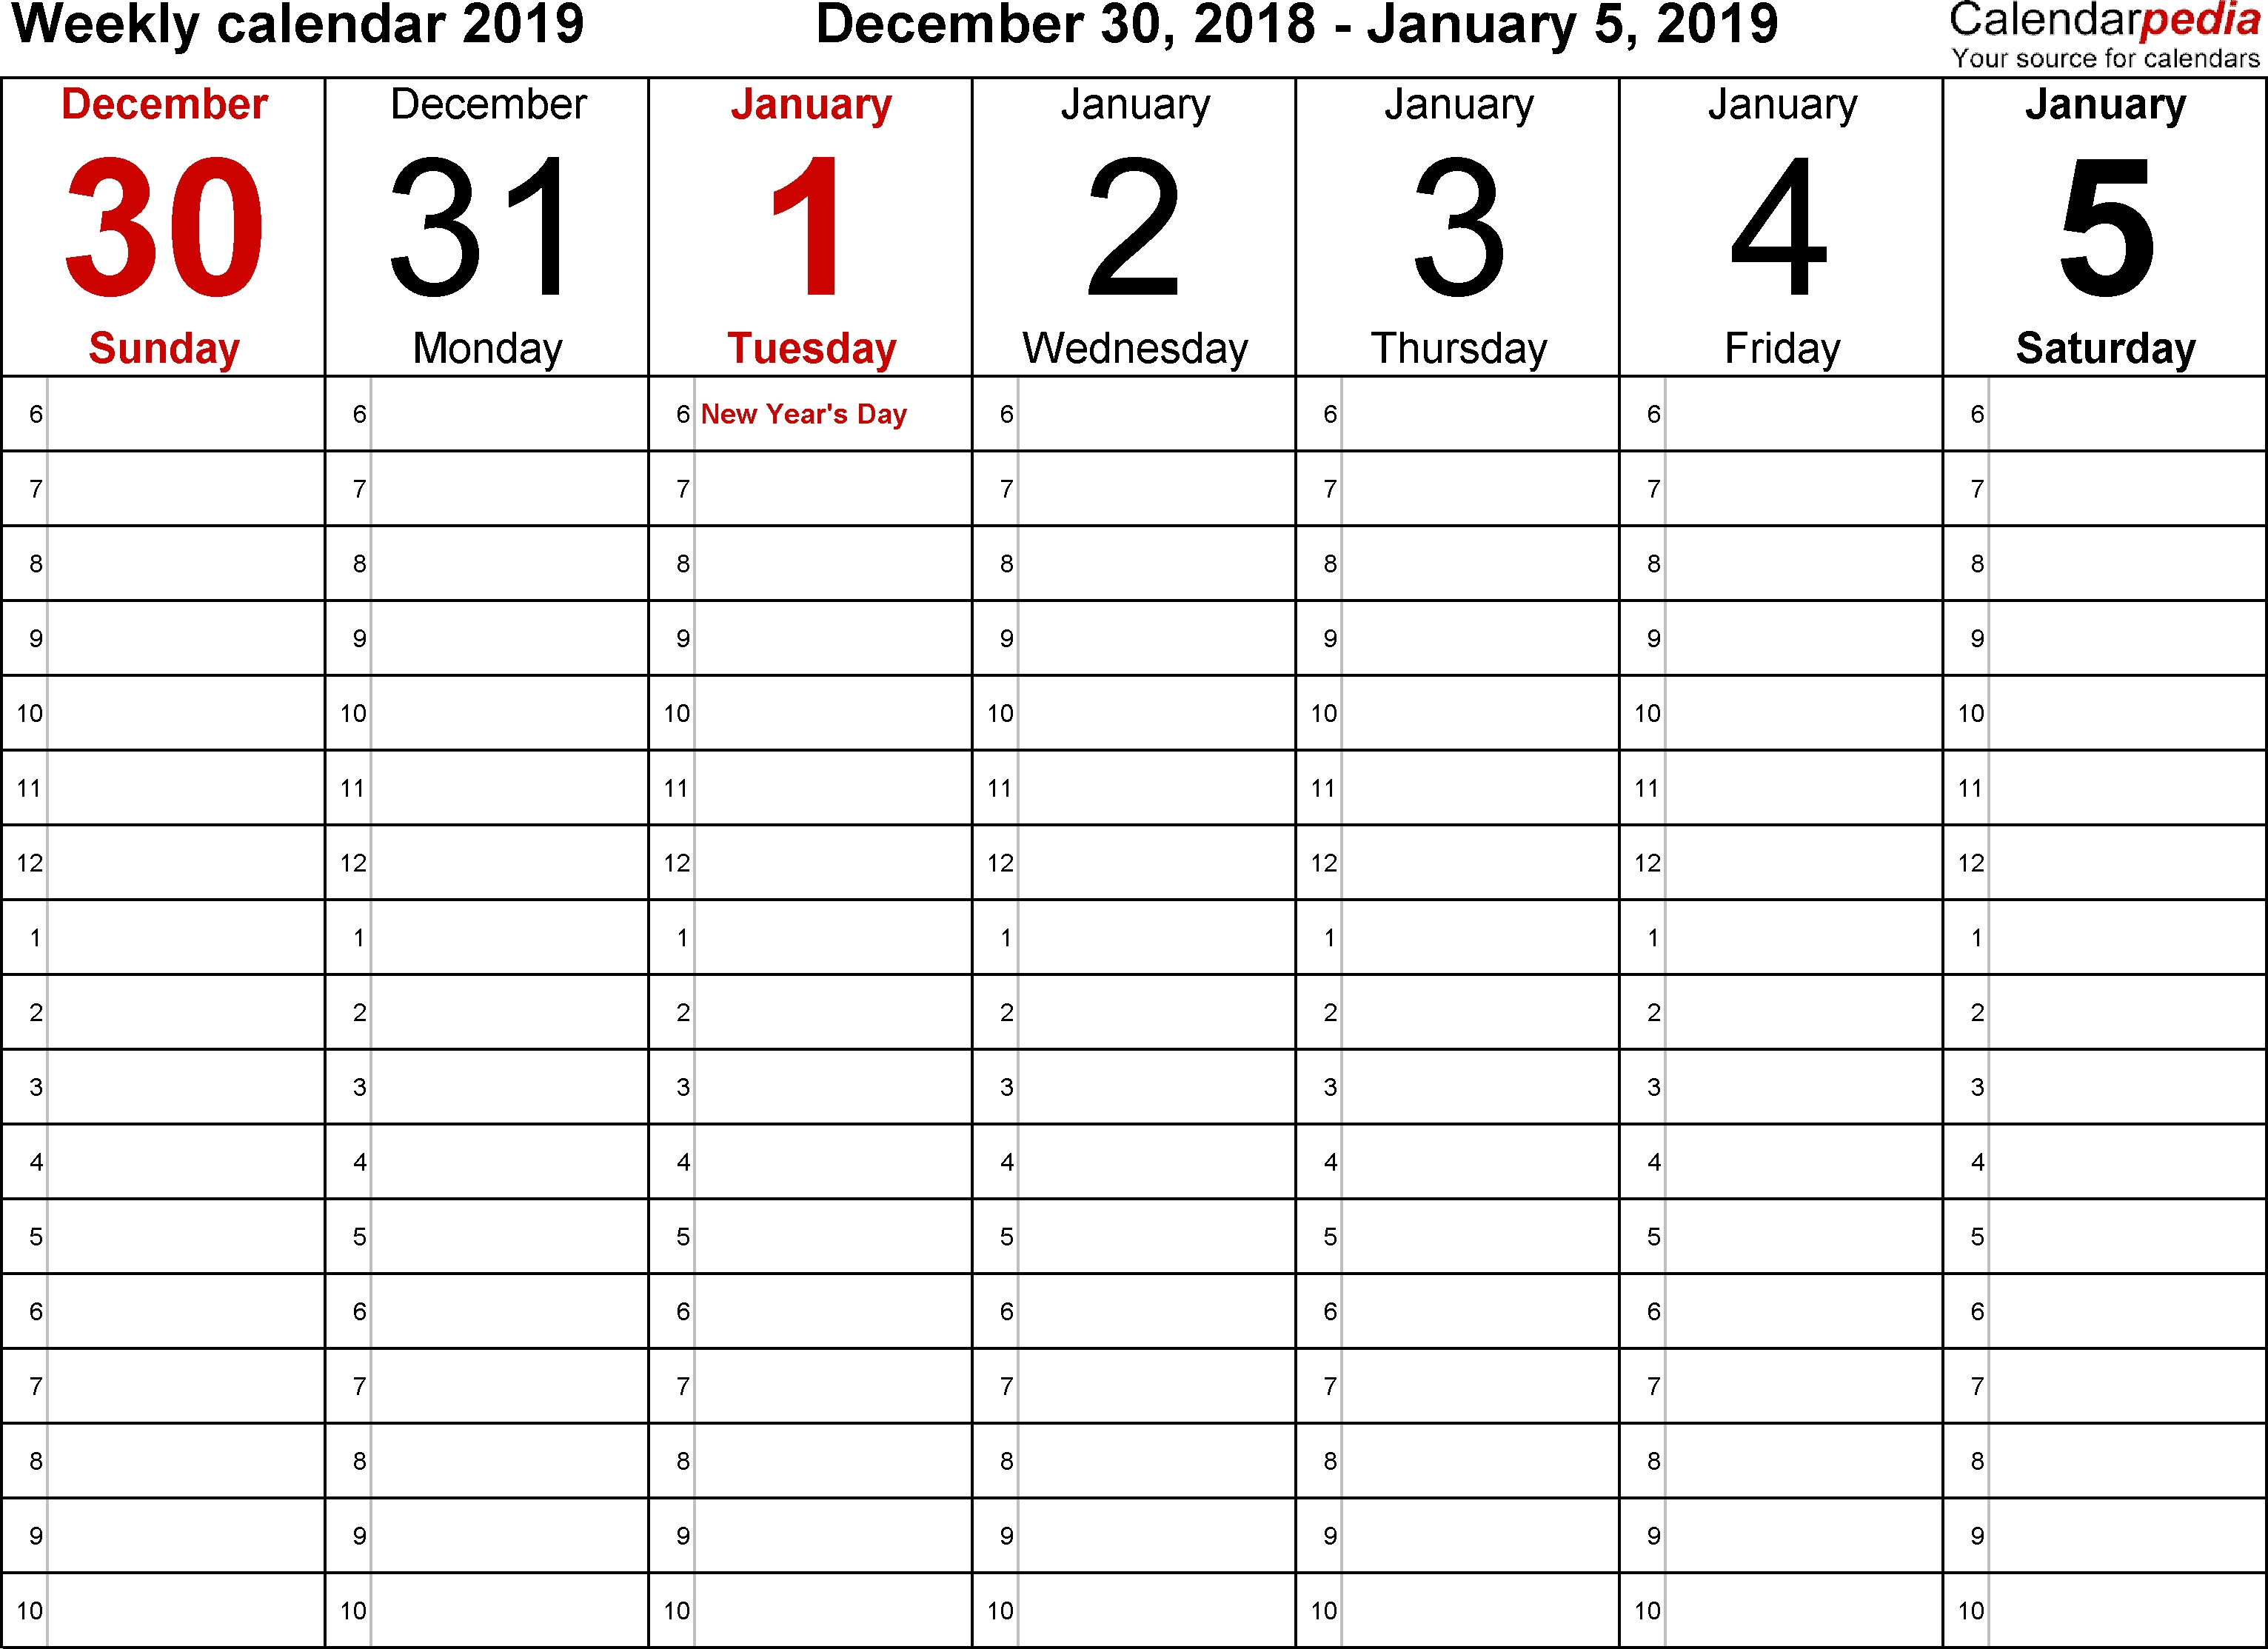 Weekly Calendar 2019 For Word - 12 Free Printable Templates  30 Day Calendar With Circle With A Line Thru It